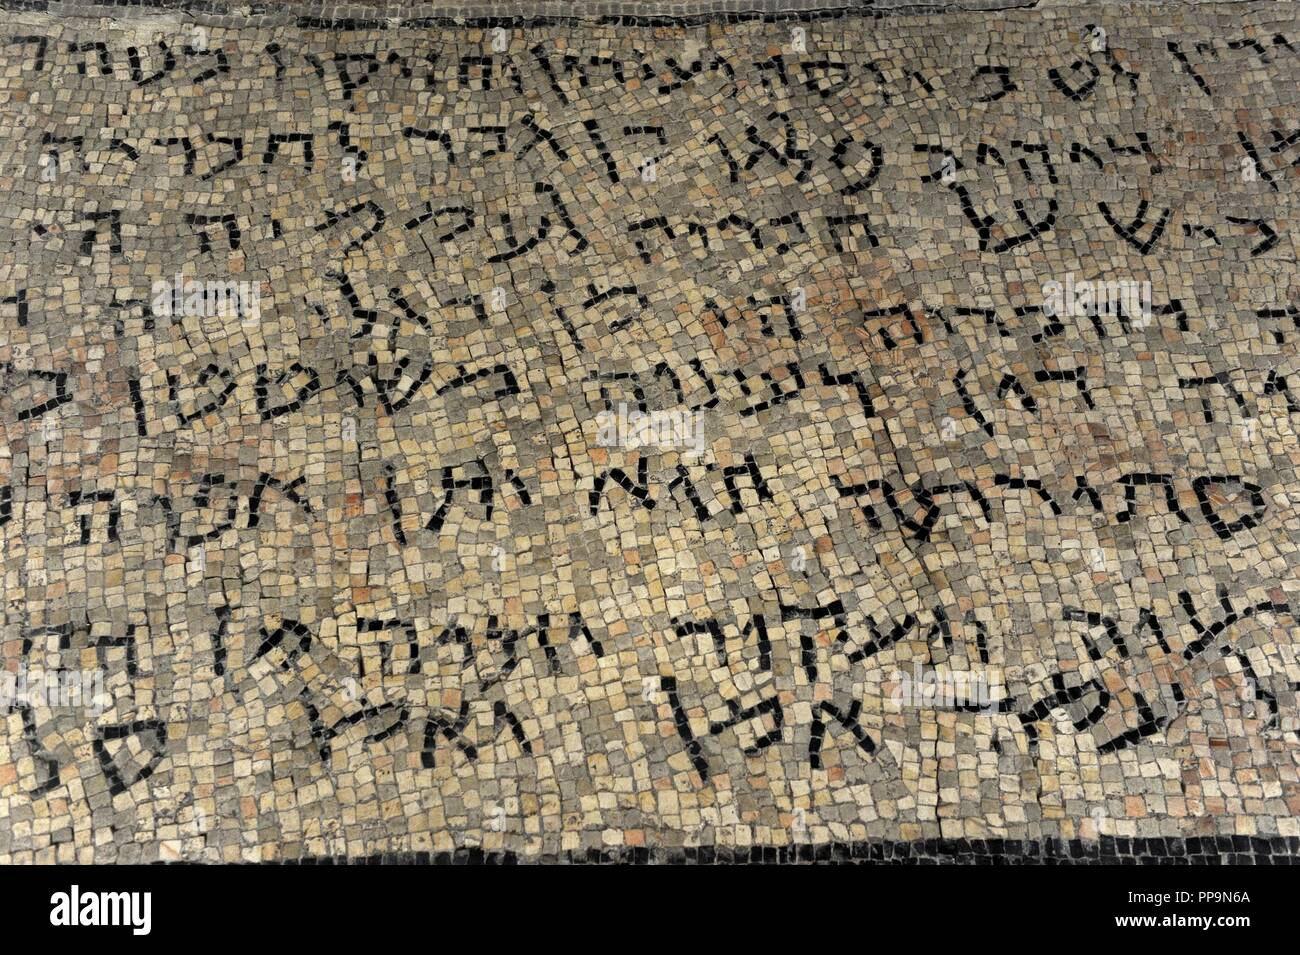 Hebrew and Aramaic Inscriptions on a Mosaic Floor Synagogue at Ein Gedi. 6th century CE. Rockefeller Archaeological Museum. Jerusalem. Israel. - Stock Image